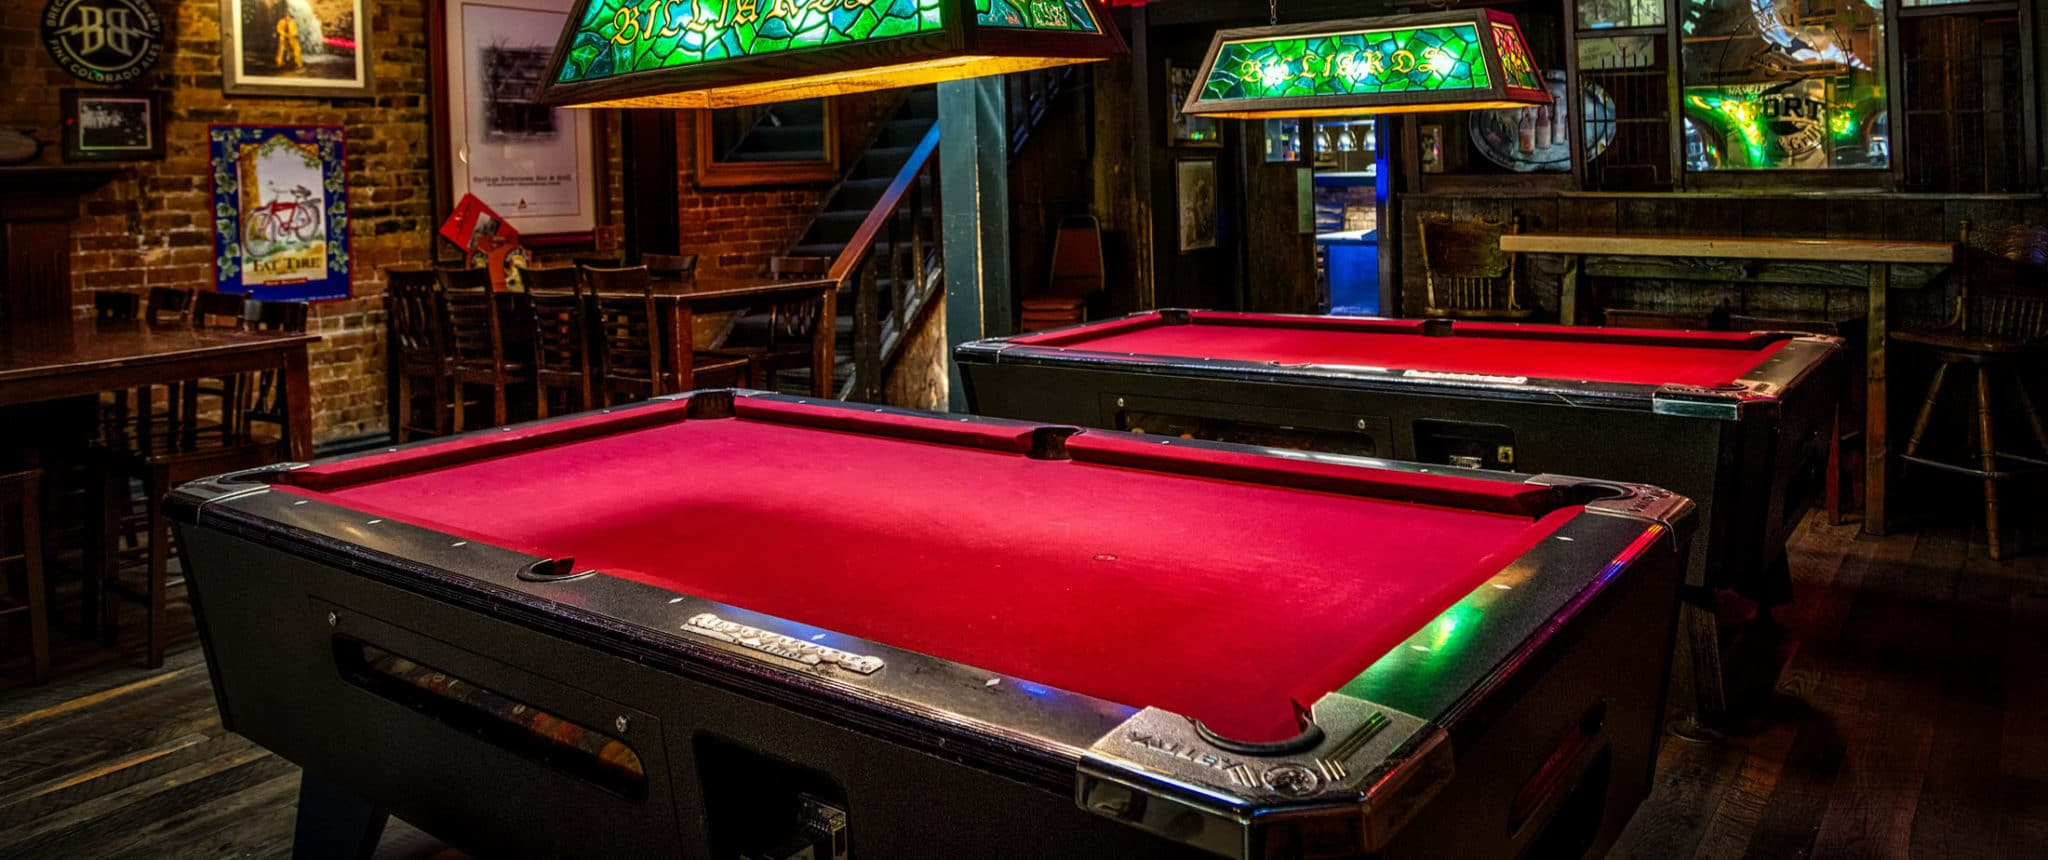 Used coin operated bar pool tables we strive to make each used bar what size used bar pool table are you looking for 6 tables watchthetrailerfo